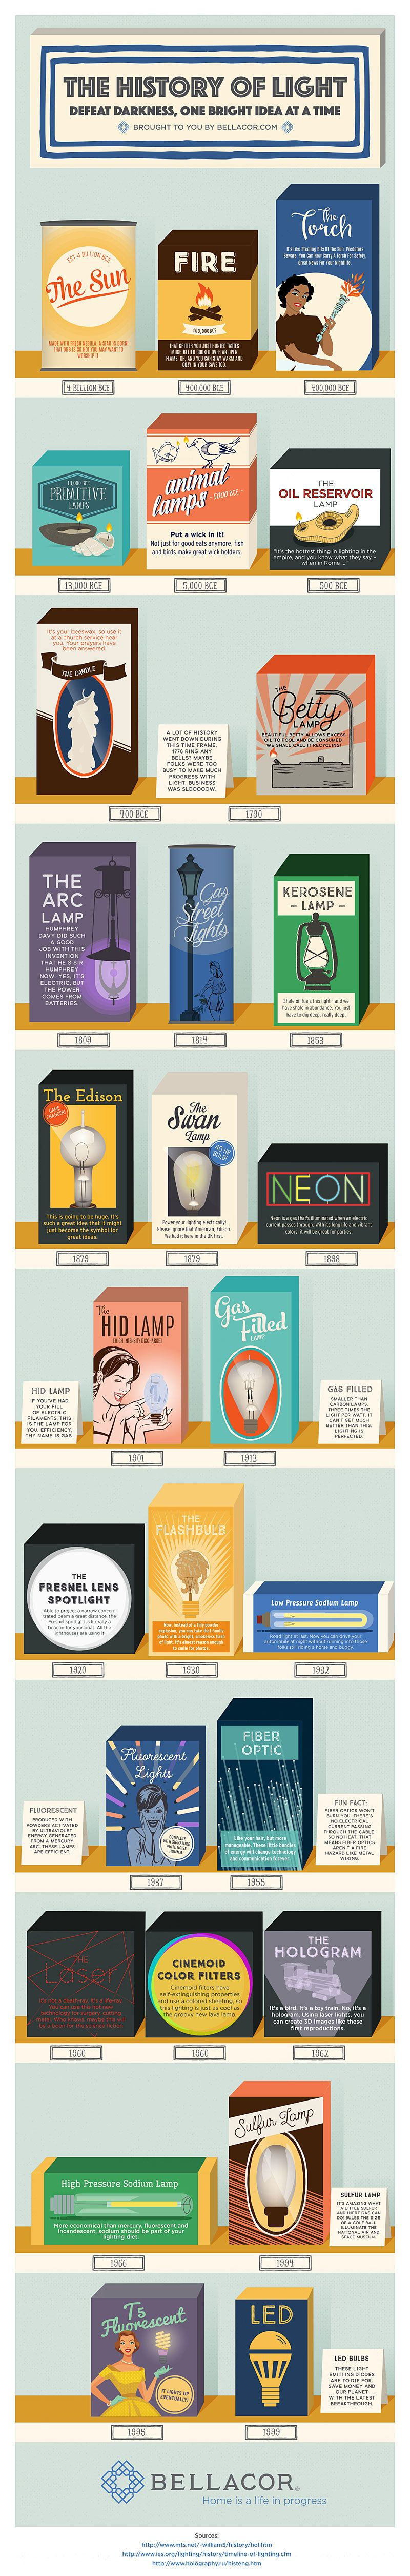 History of Light #infographic